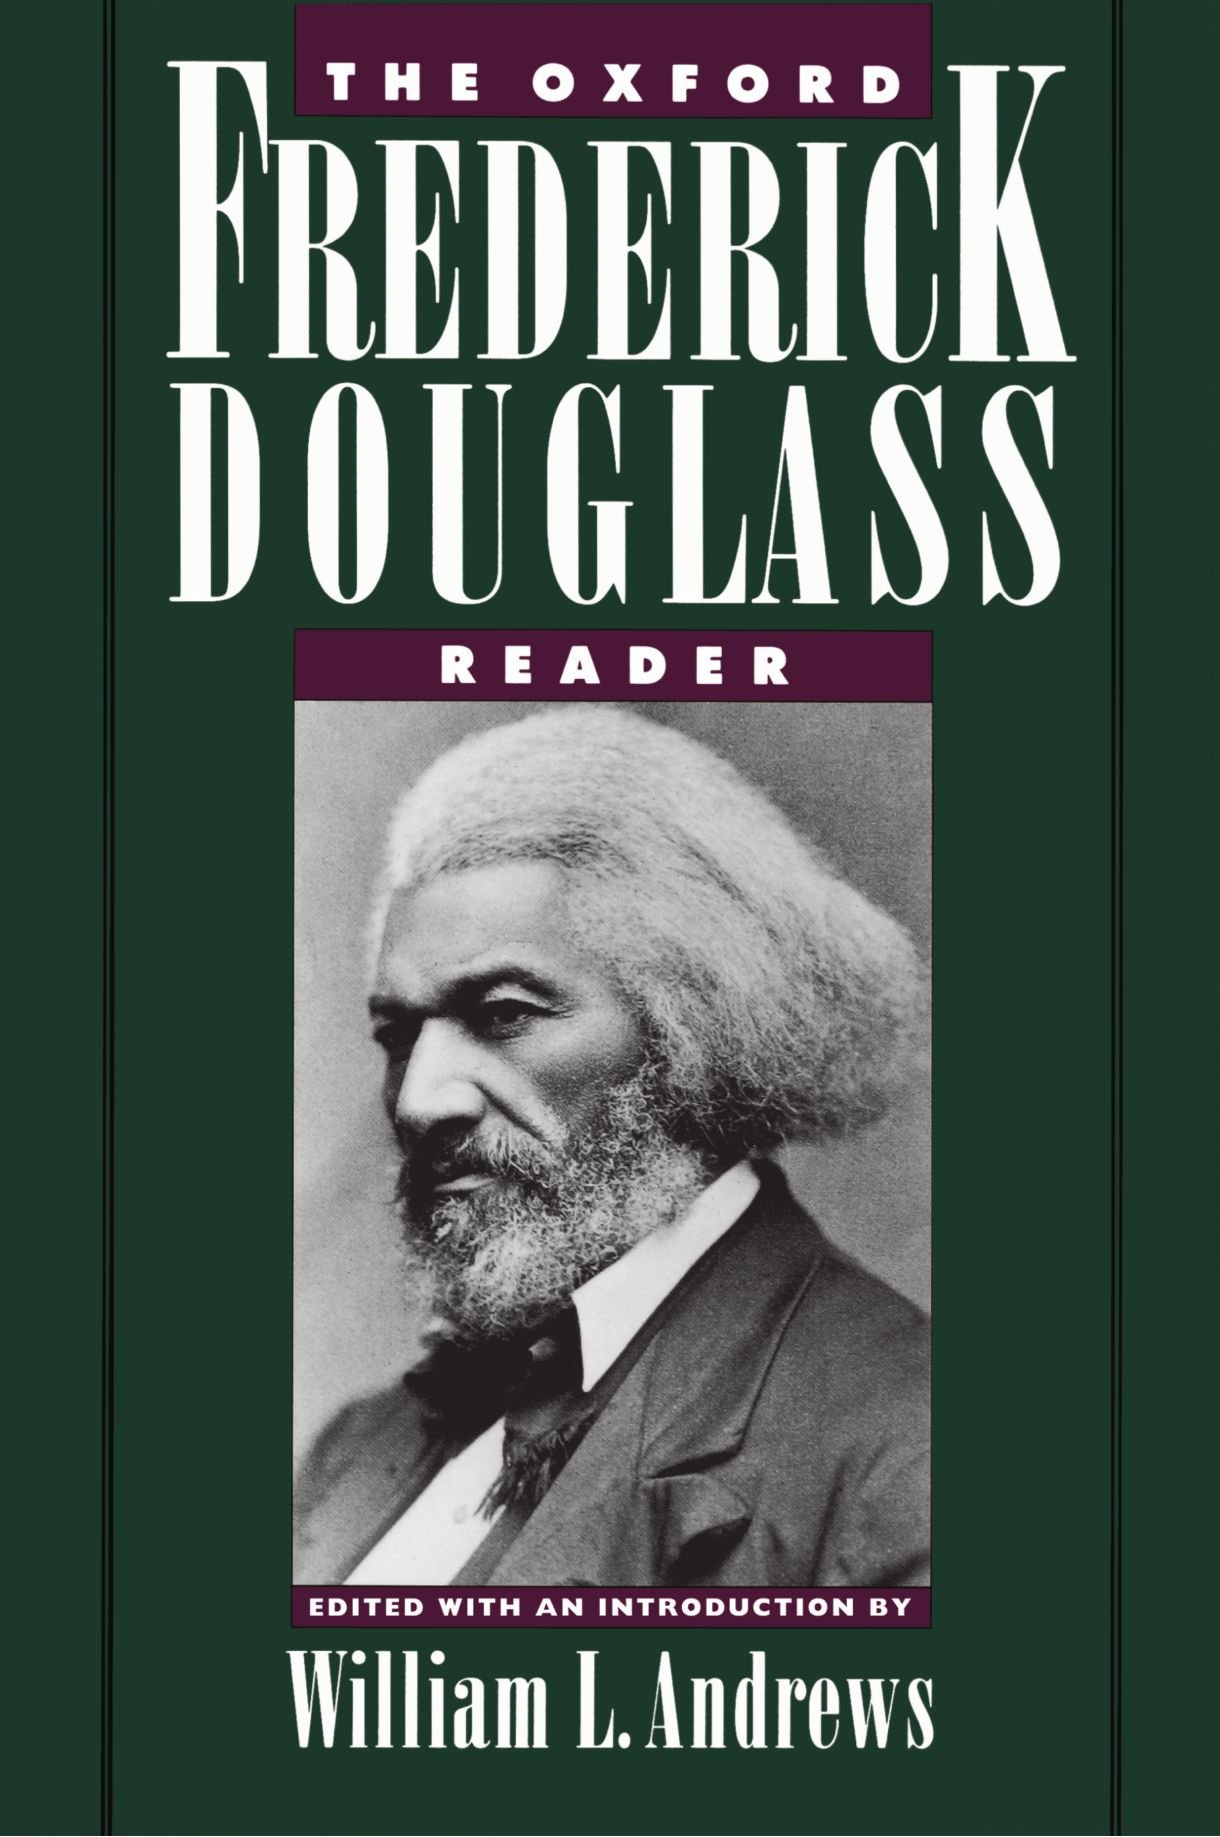 The Oxford Frederick Douglass Reader by Oxford University Press